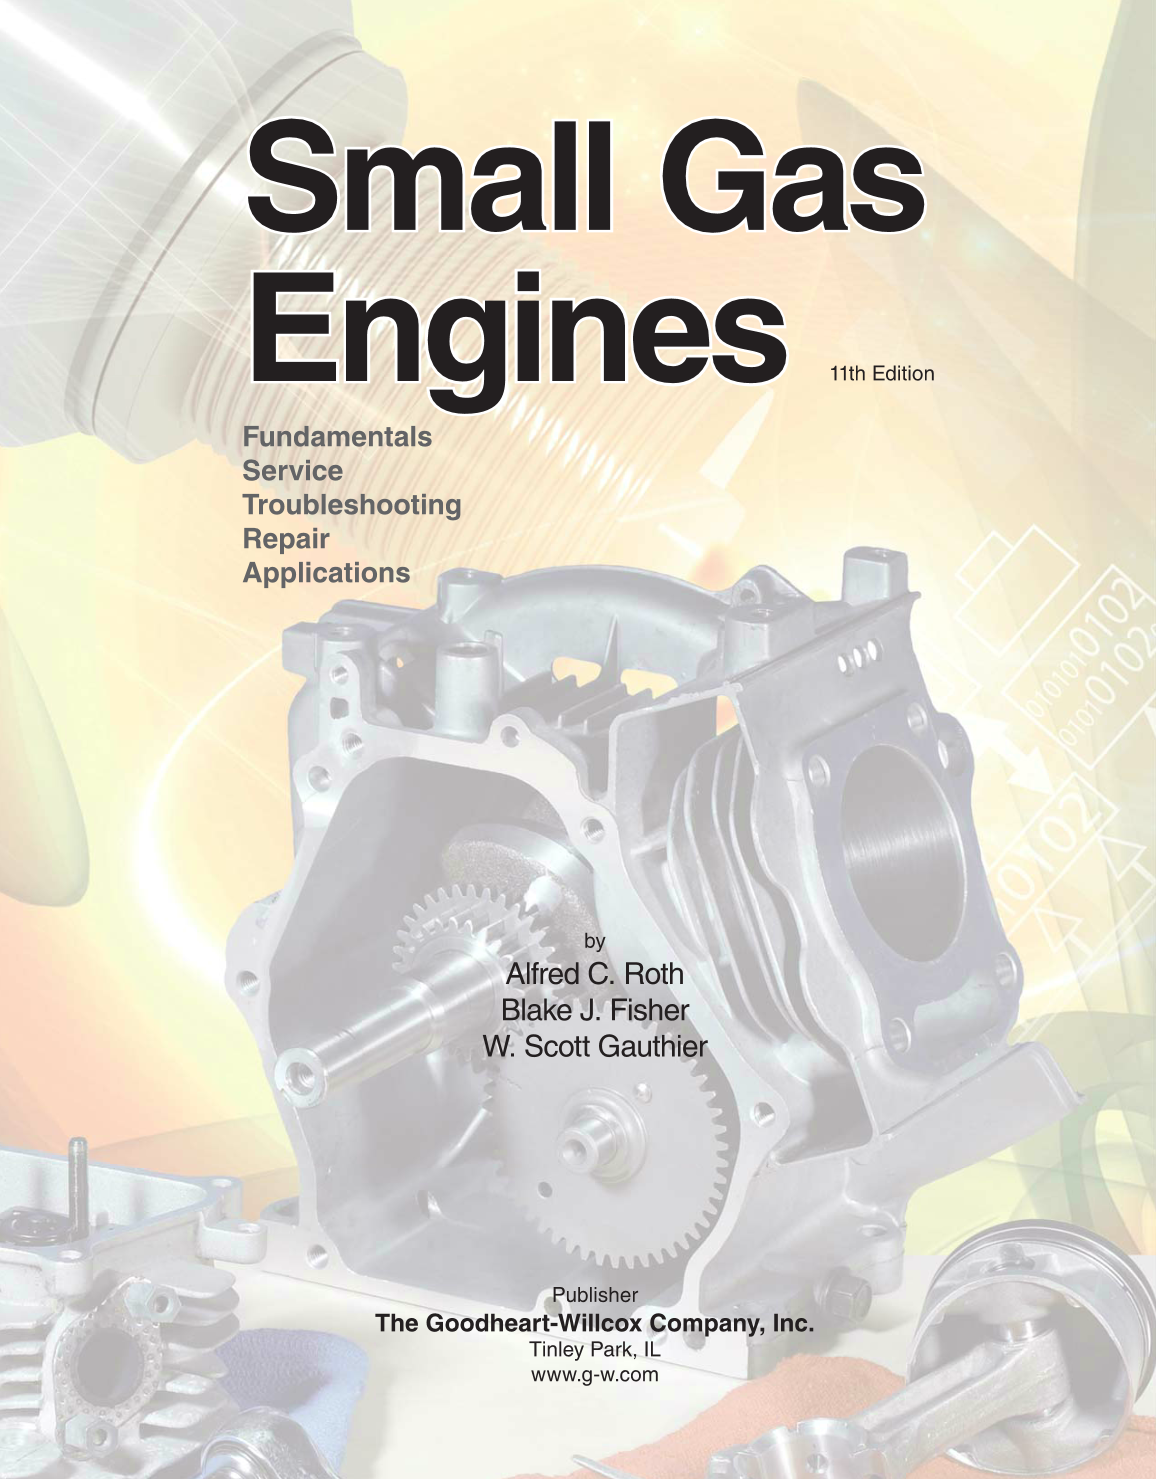 Service Small Gas Engines: Fundamentals Troubleshooting Applications Repair